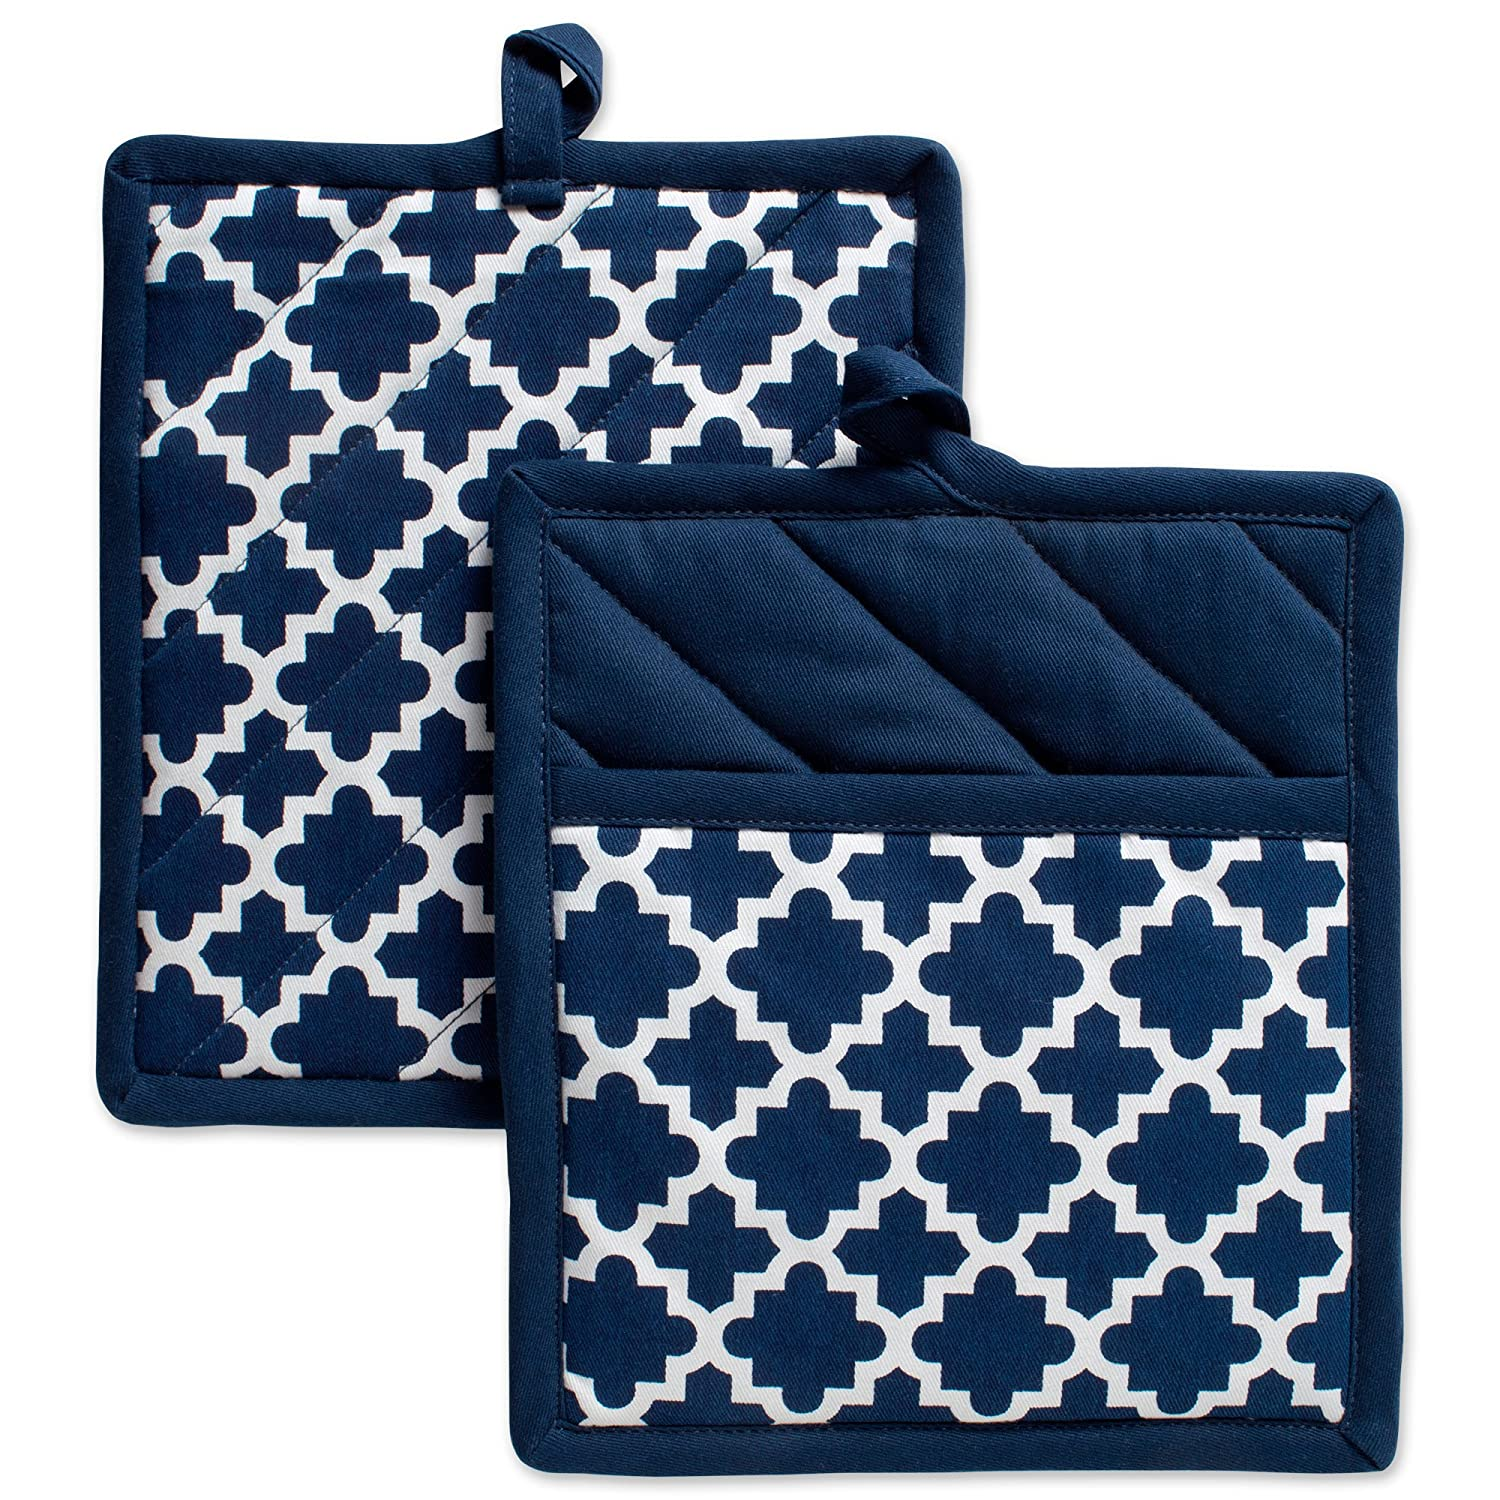 "DII Cotton Lattice Pot Holders, 9 x 8"" Set of 2, Machine Washable and Heat Resistant Hot Pad for Everyday Kitchen Cooking & Baking-Nautical Blue"